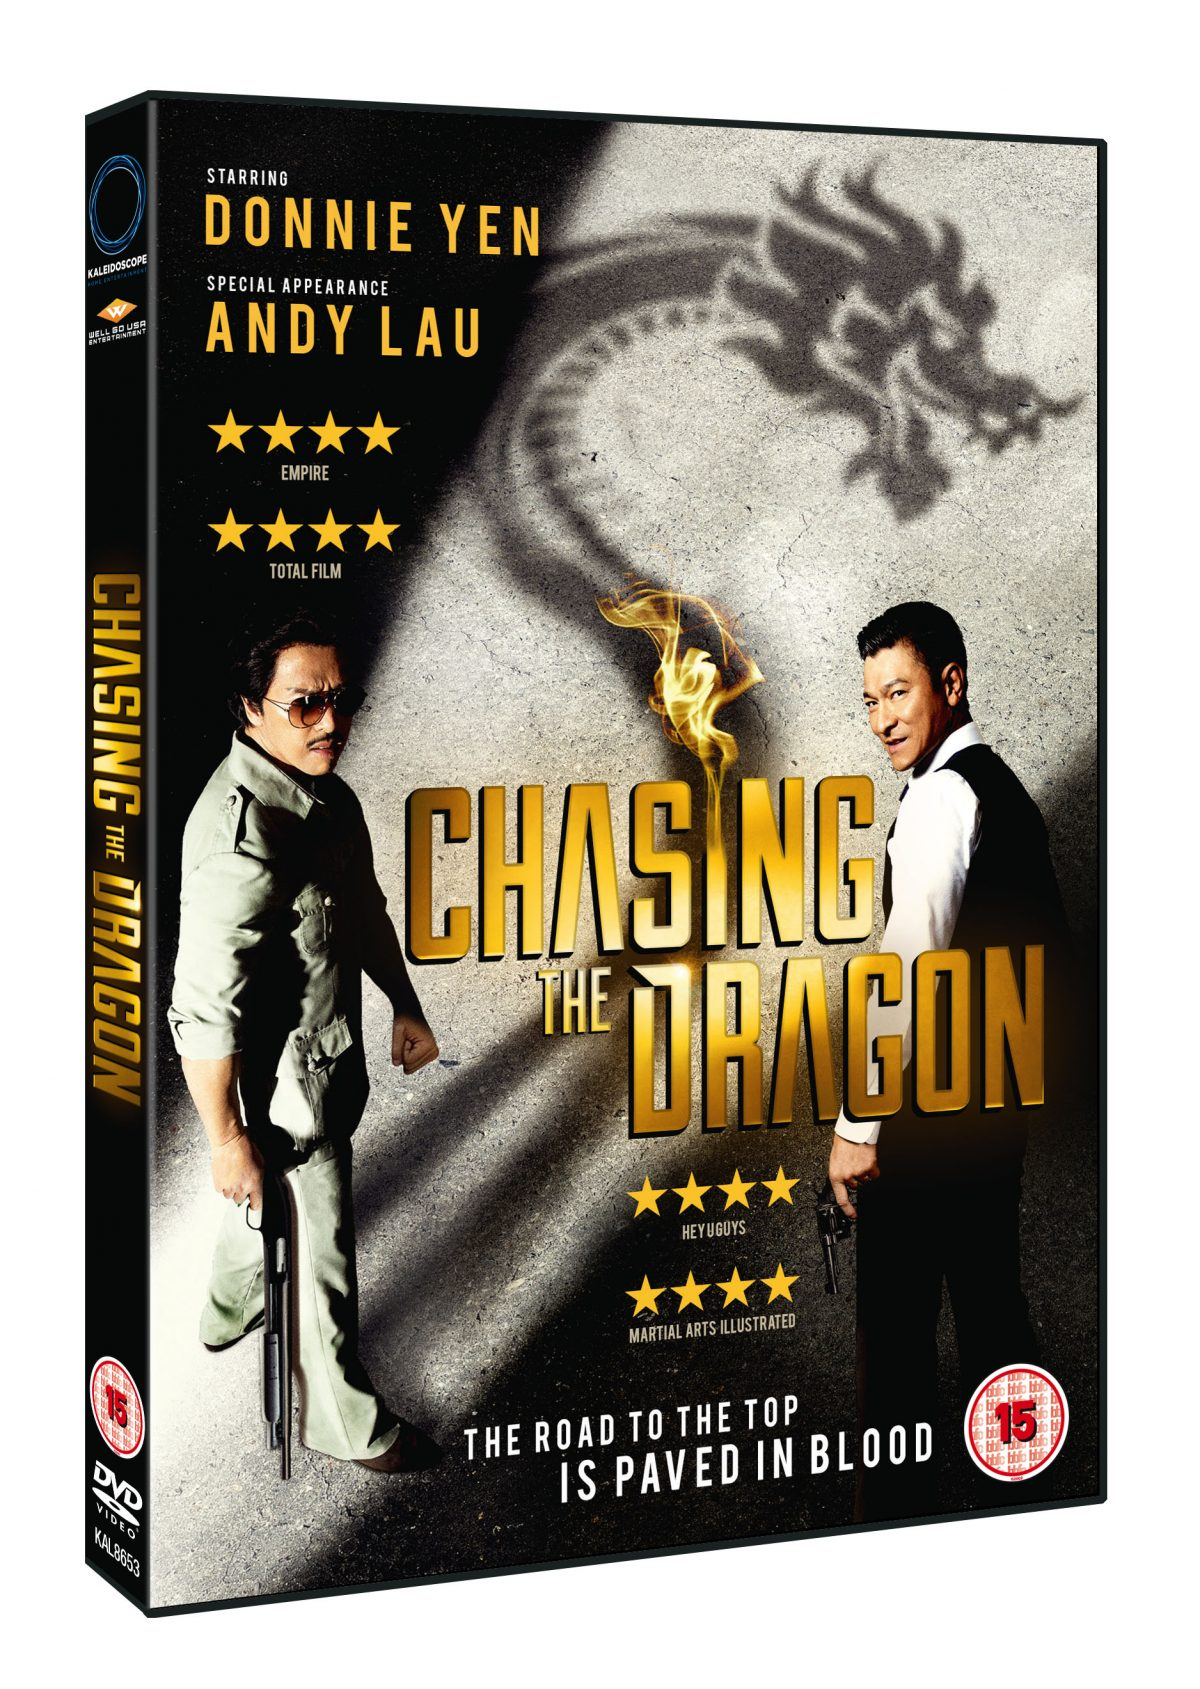 To celebrate the release of Chasing the Dragon - on DVD 22nd January - we are giving away a DVD courtesy of Well Go USA. Screen legends Donnie Yen and Andy Lau star in an action-packed Hong Kong crime thriller, based on the life of a real-life drug lord and Triad gang leader, and his brutal ascension to power.